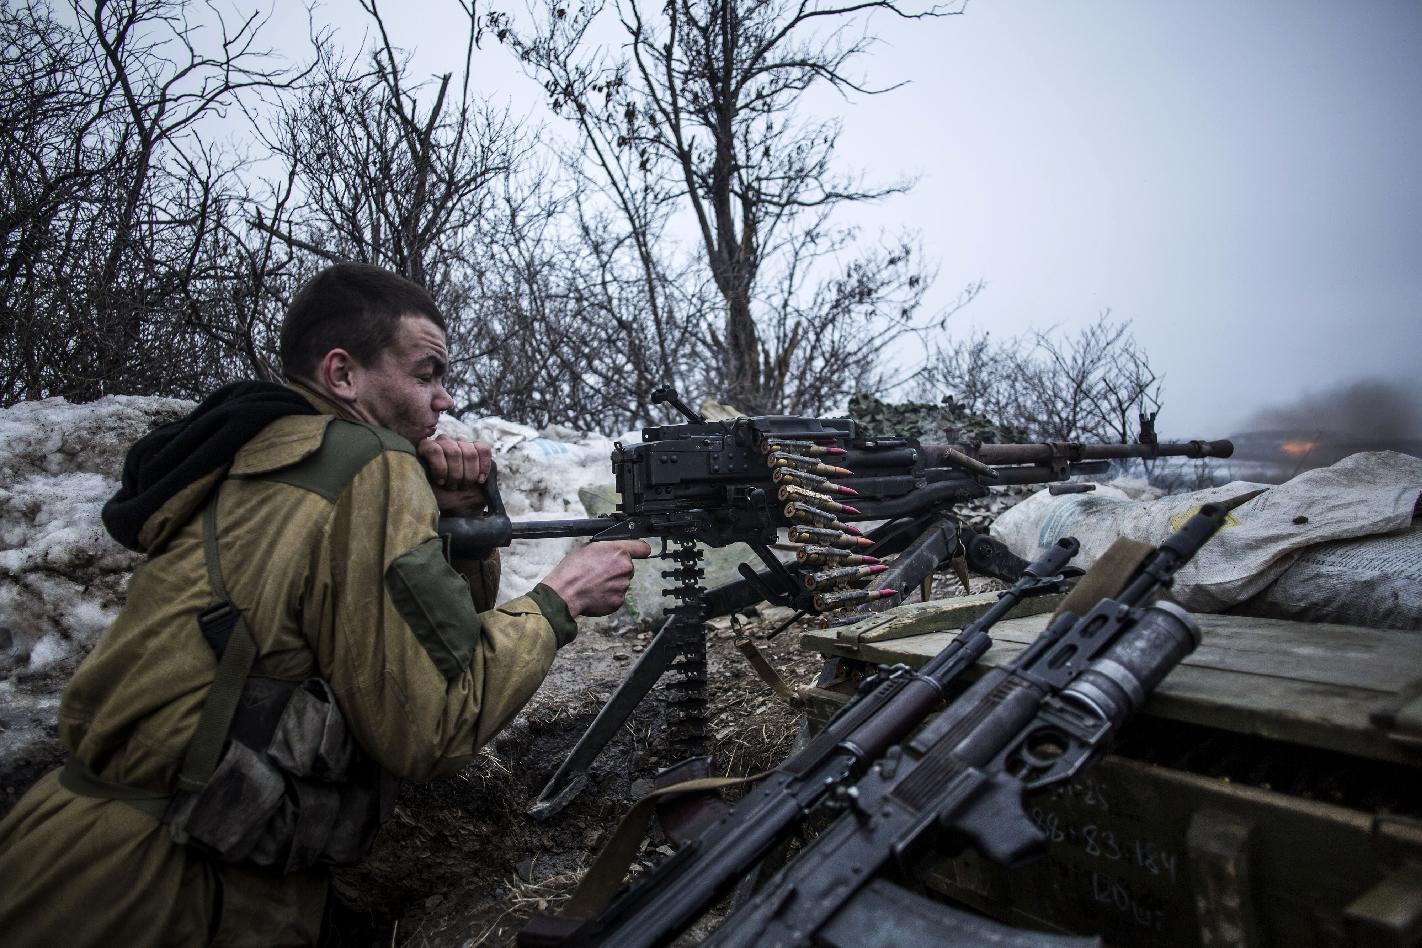 Gorbachev warns of risk of armed conflict in new Cold War